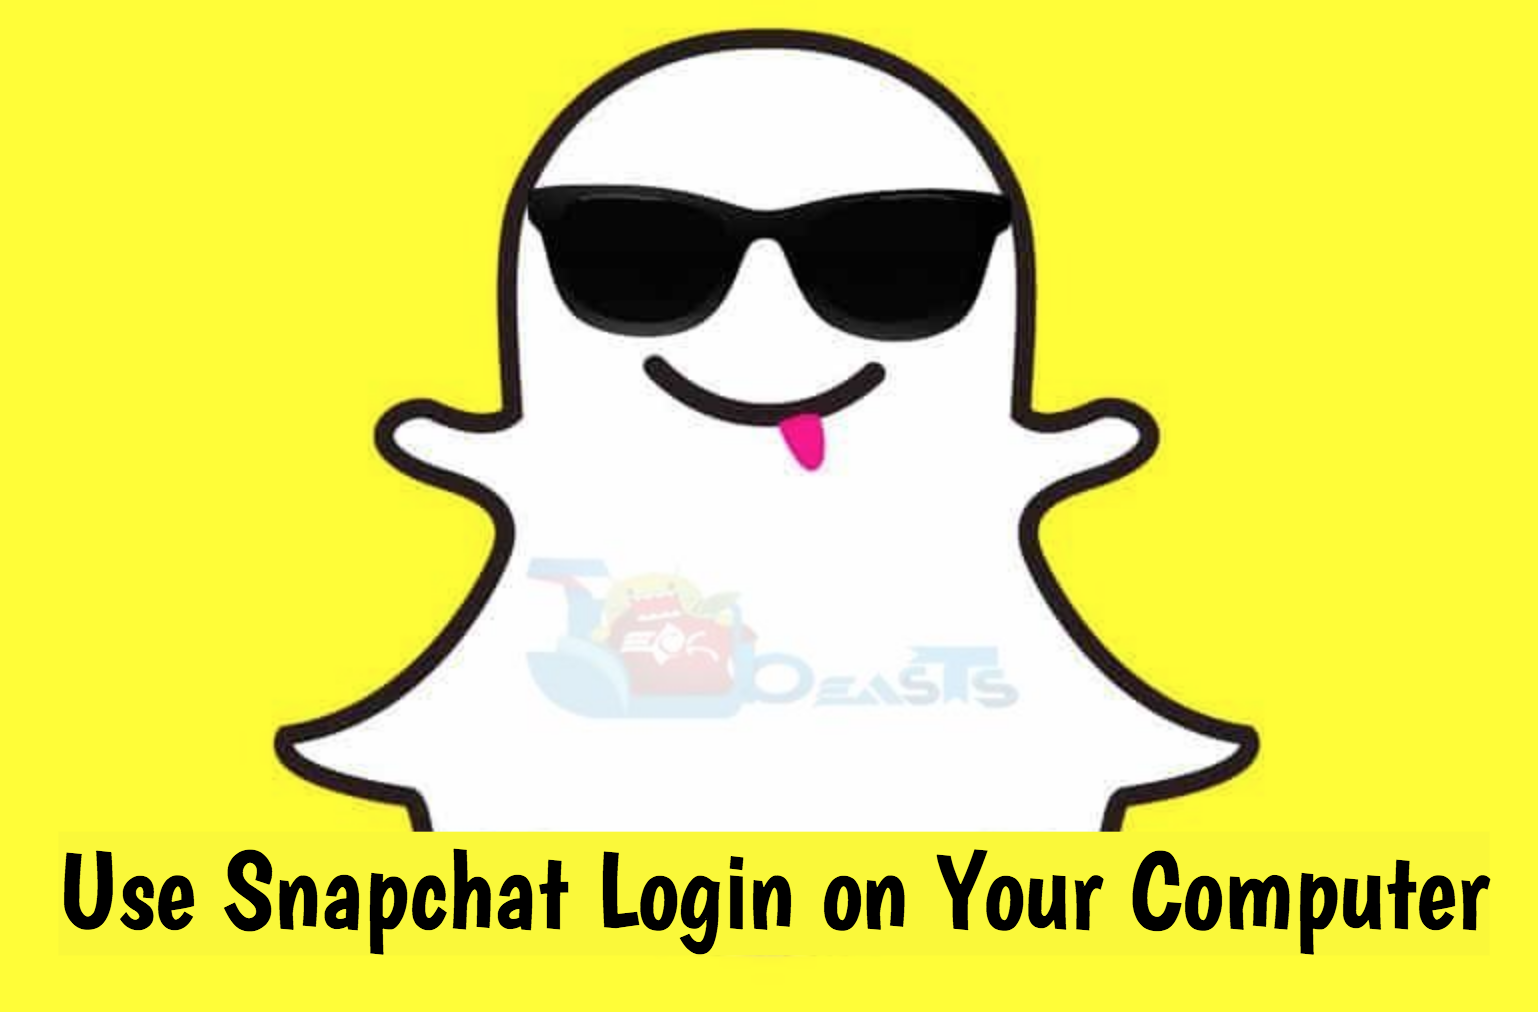 Use Snapchat Login on Your Computer